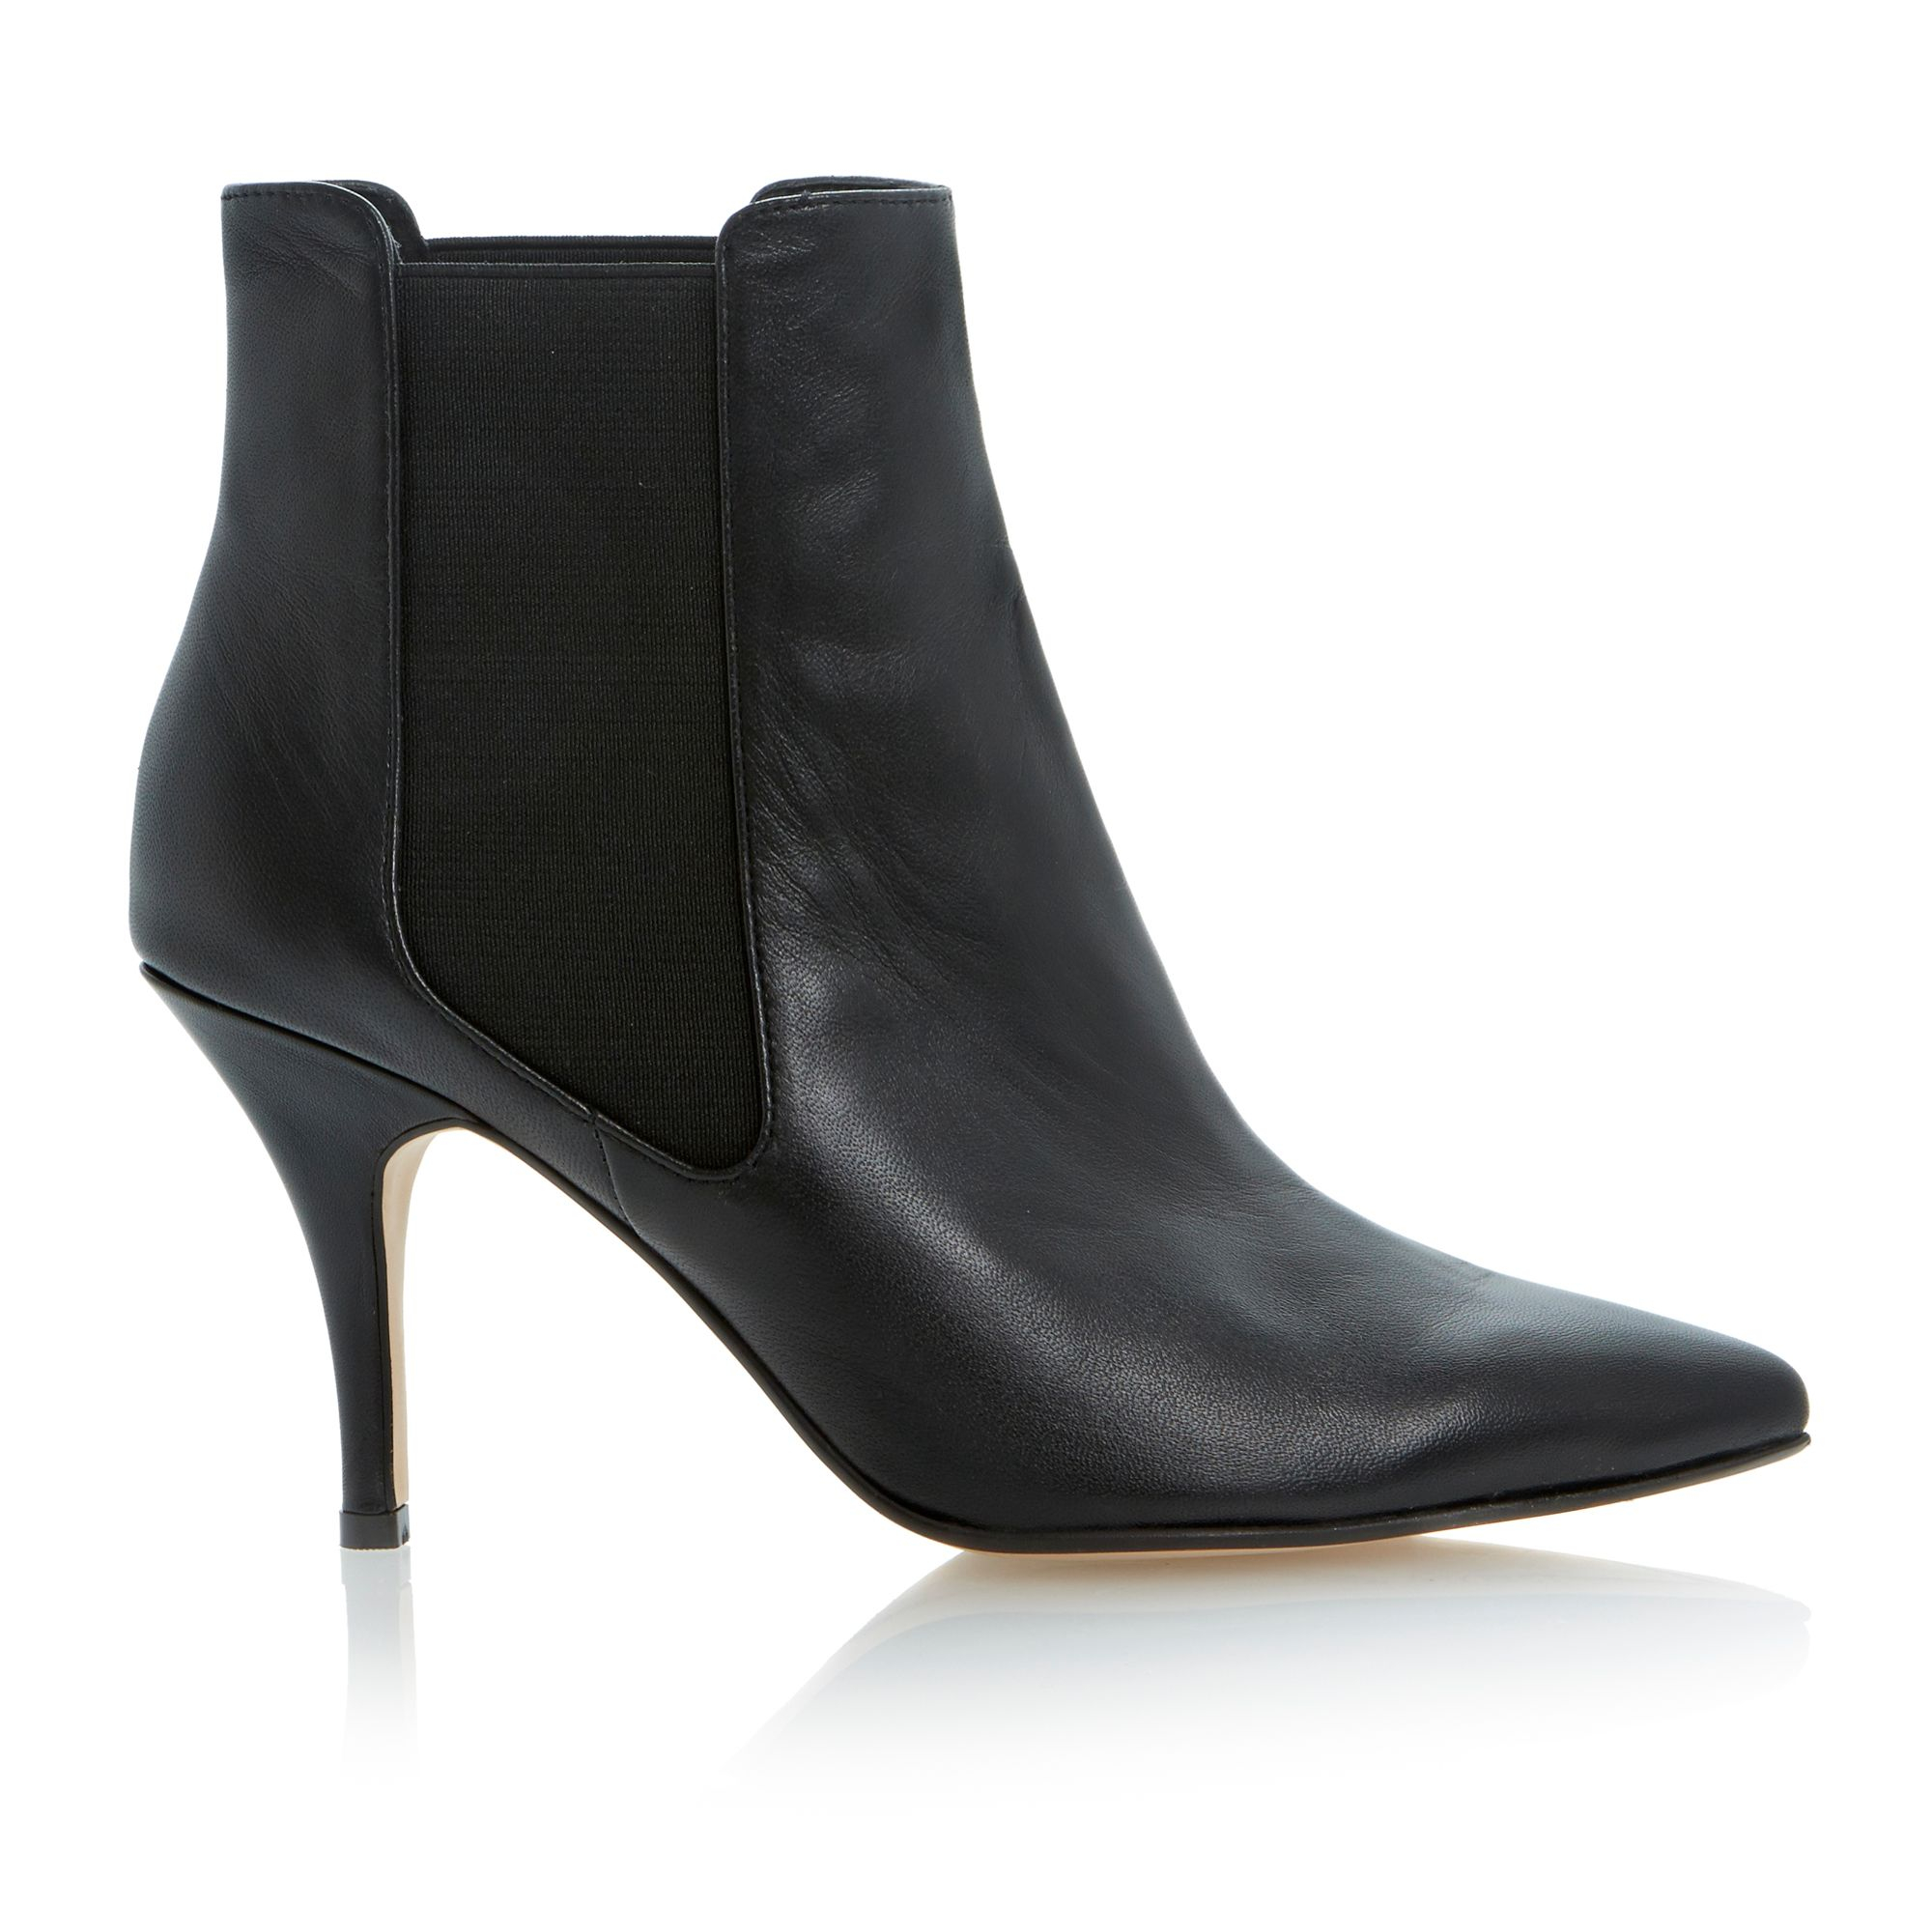 Dune Nightlife Leather Pointed Toe Stiletto Low Boots in Black Leather (Black)